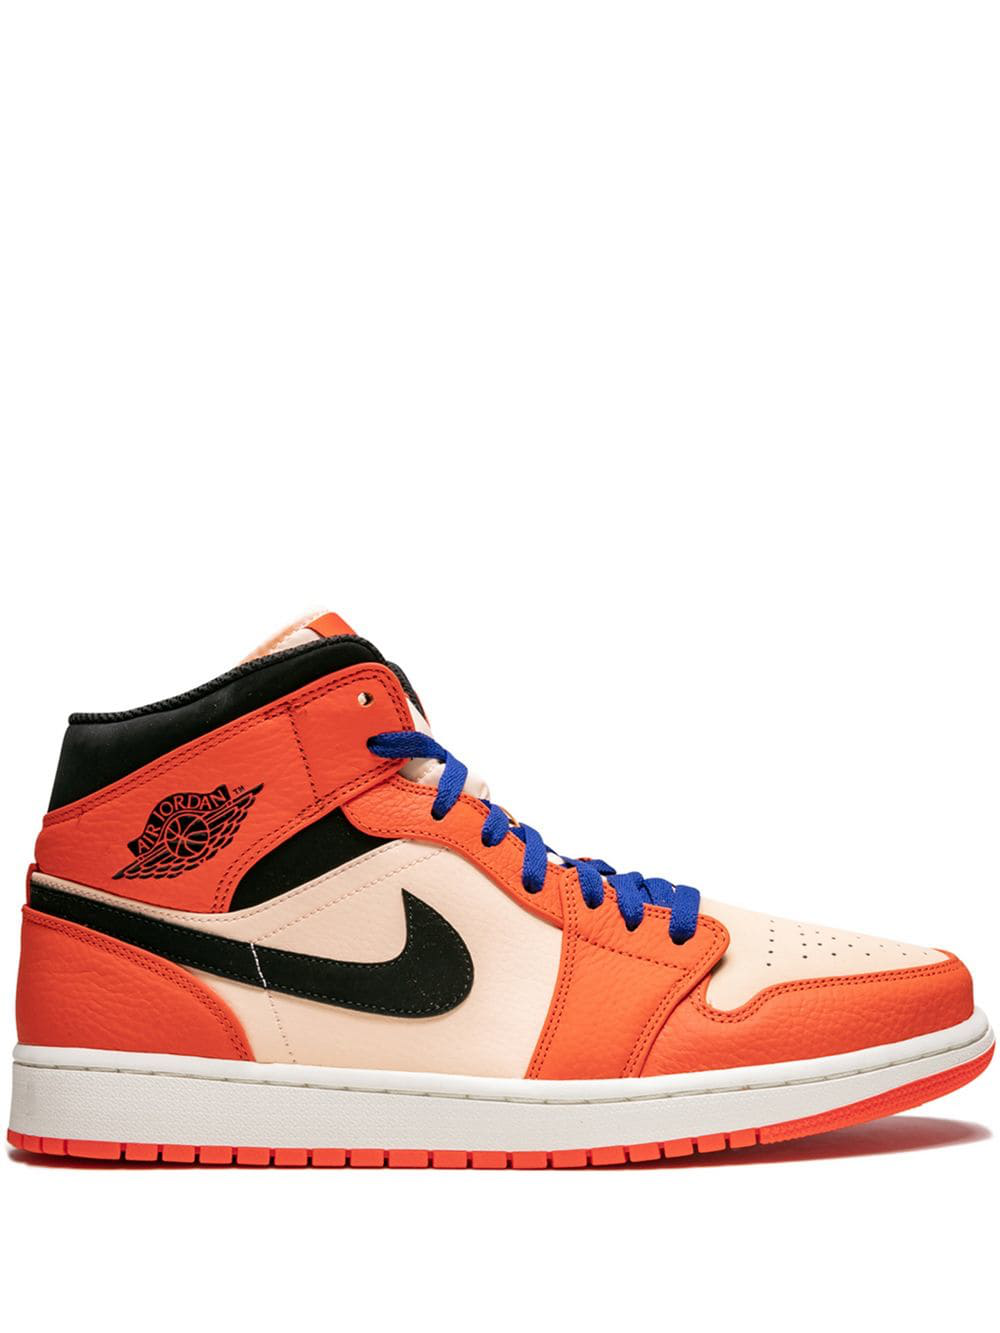 3fedd129ce47 JORDAN. Jordan  Air Jordan 1 Mid Se  Sneakers - Orange in Team Orange Black-Crimson  Tint